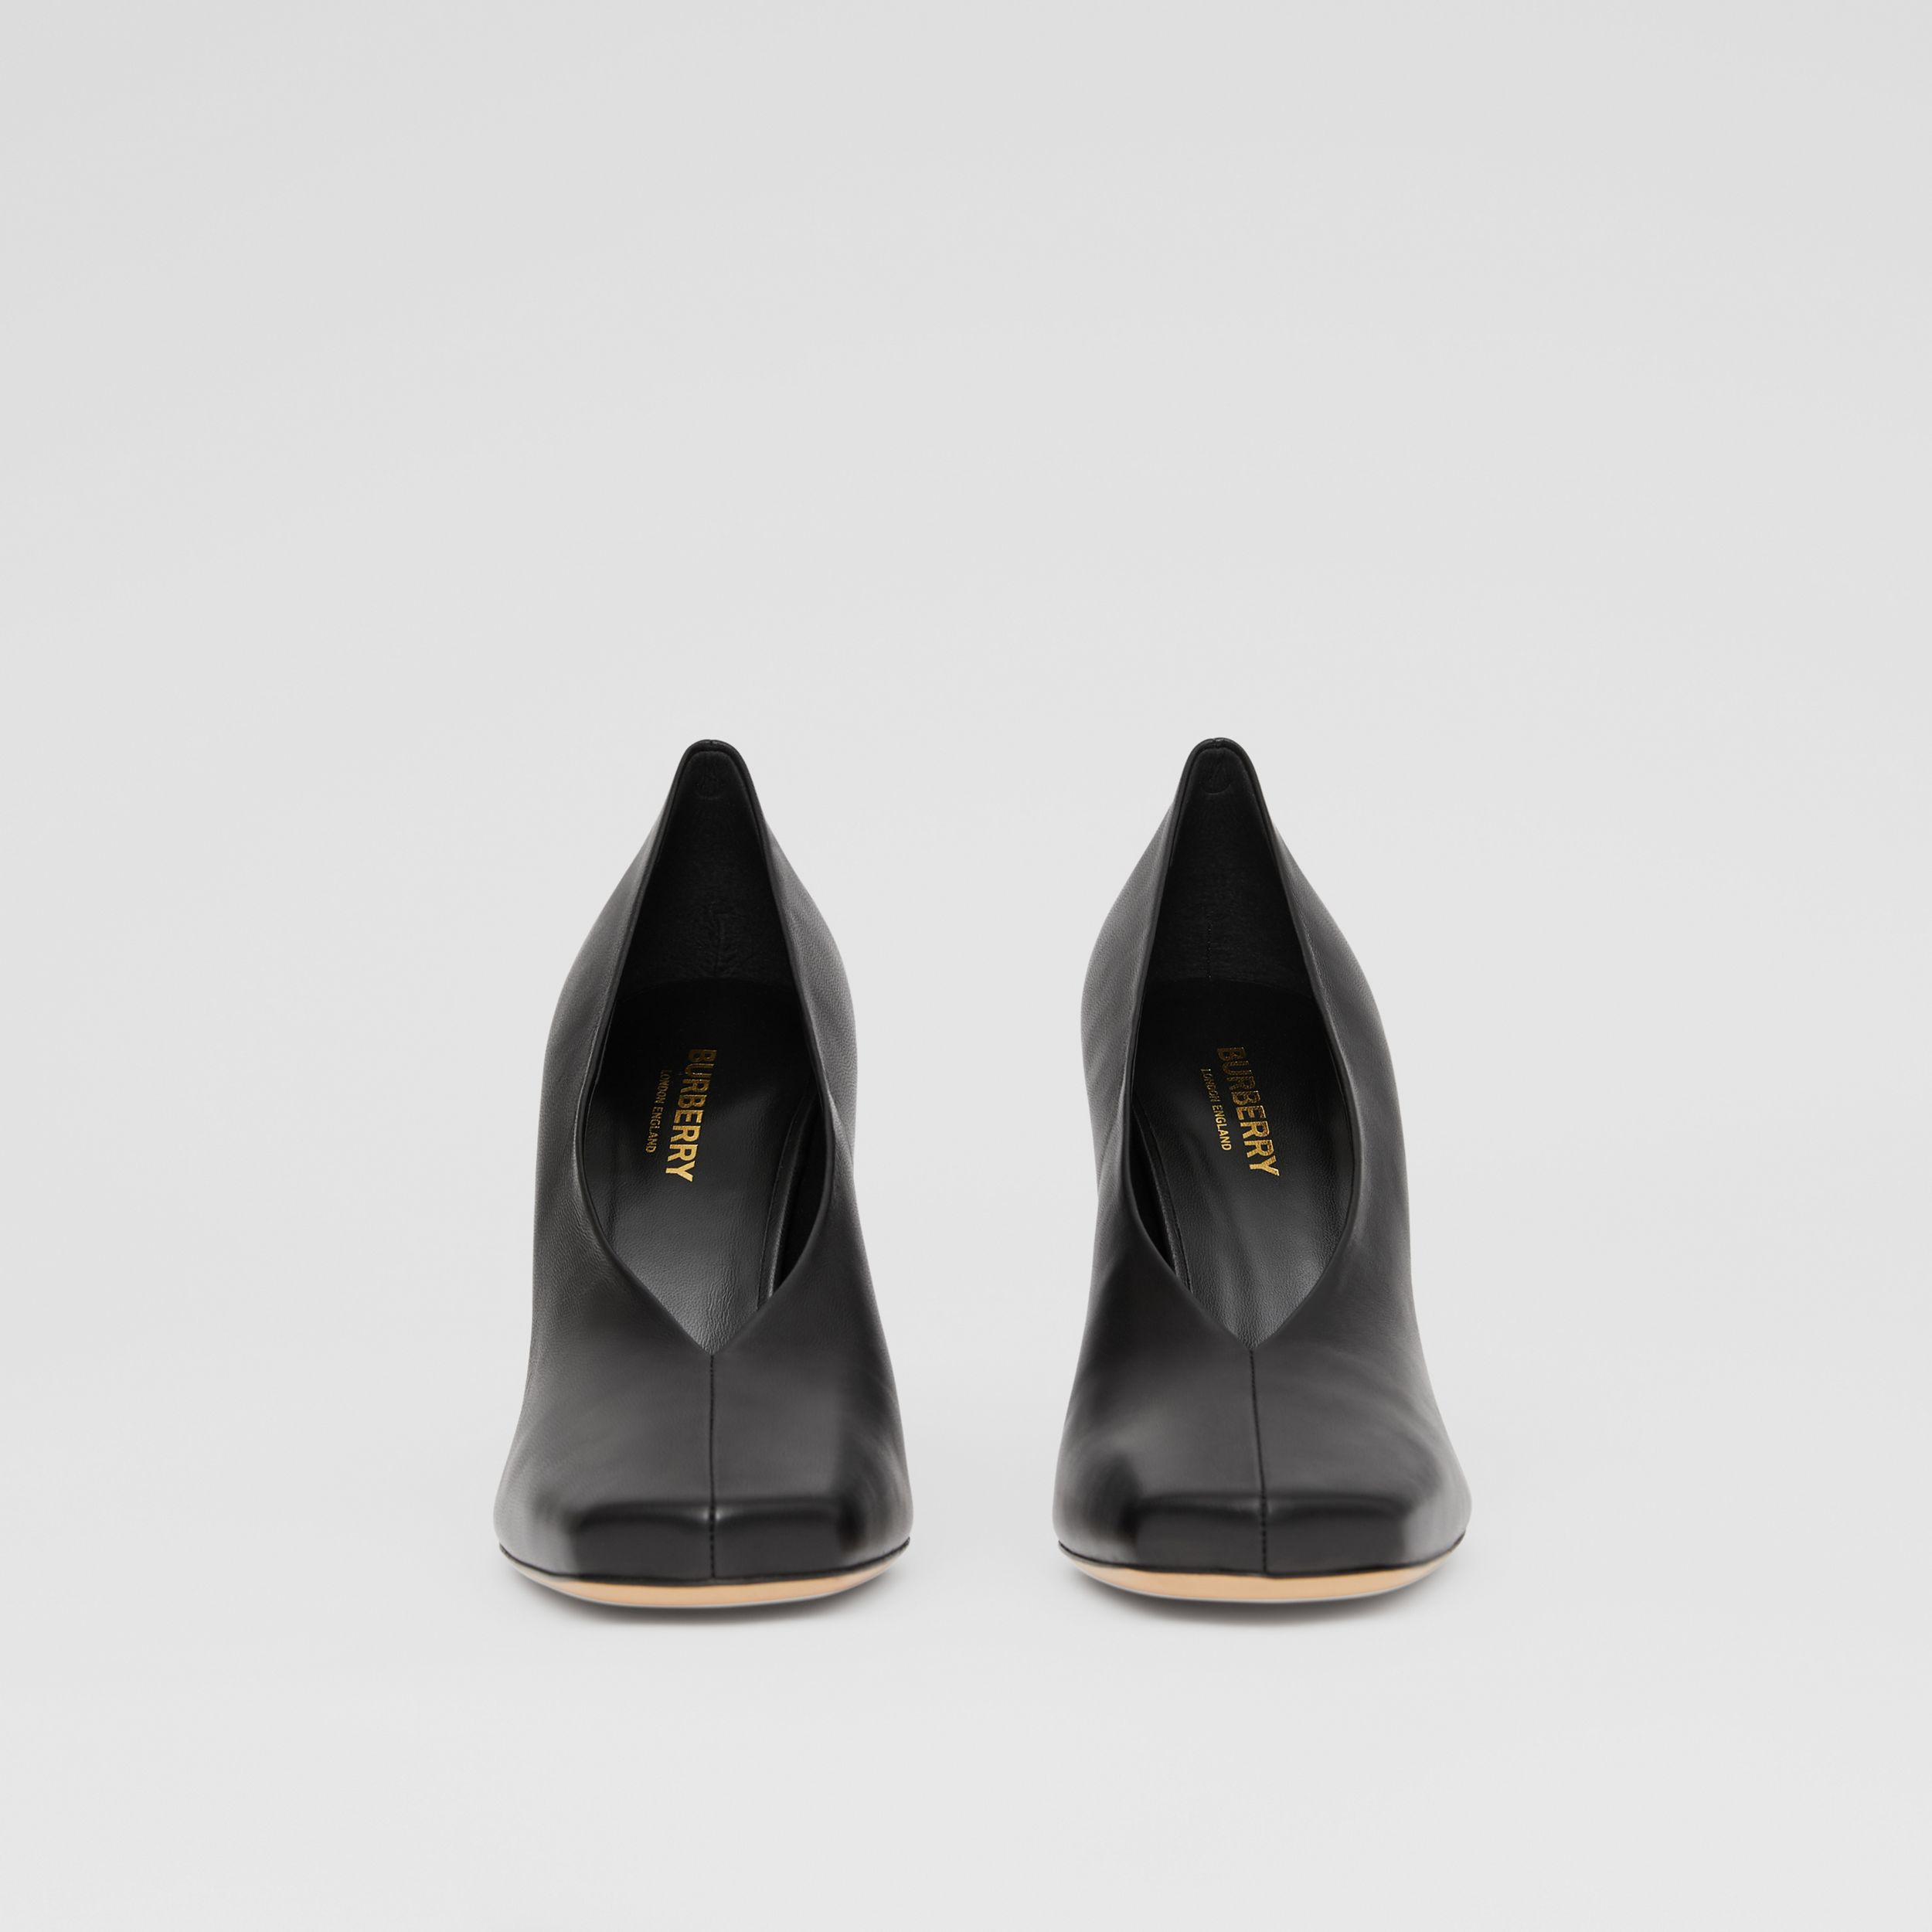 Lambskin Sculptural Pumps in Black - Women | Burberry Australia - 4